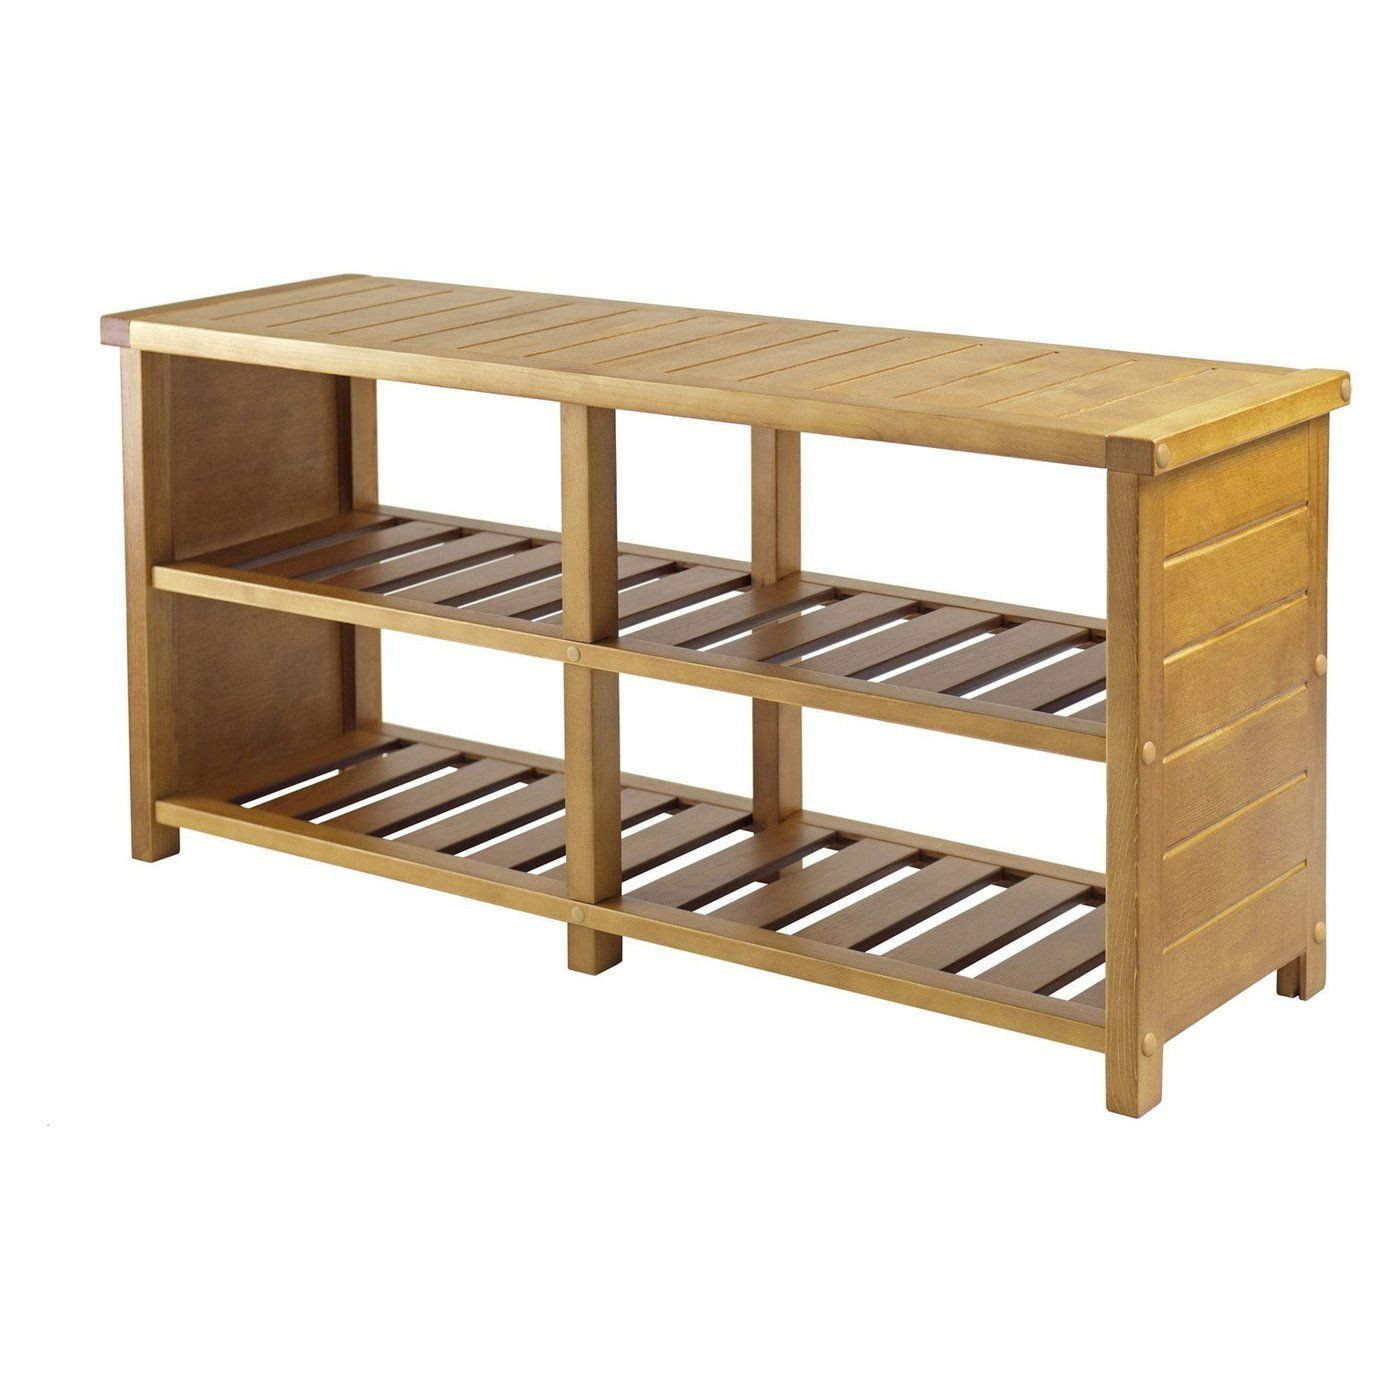 Best ideas about Shoe Benches Entryway . Save or Pin Shoe Storage Bench Wood Organizer Accent Rack Entryway Now.